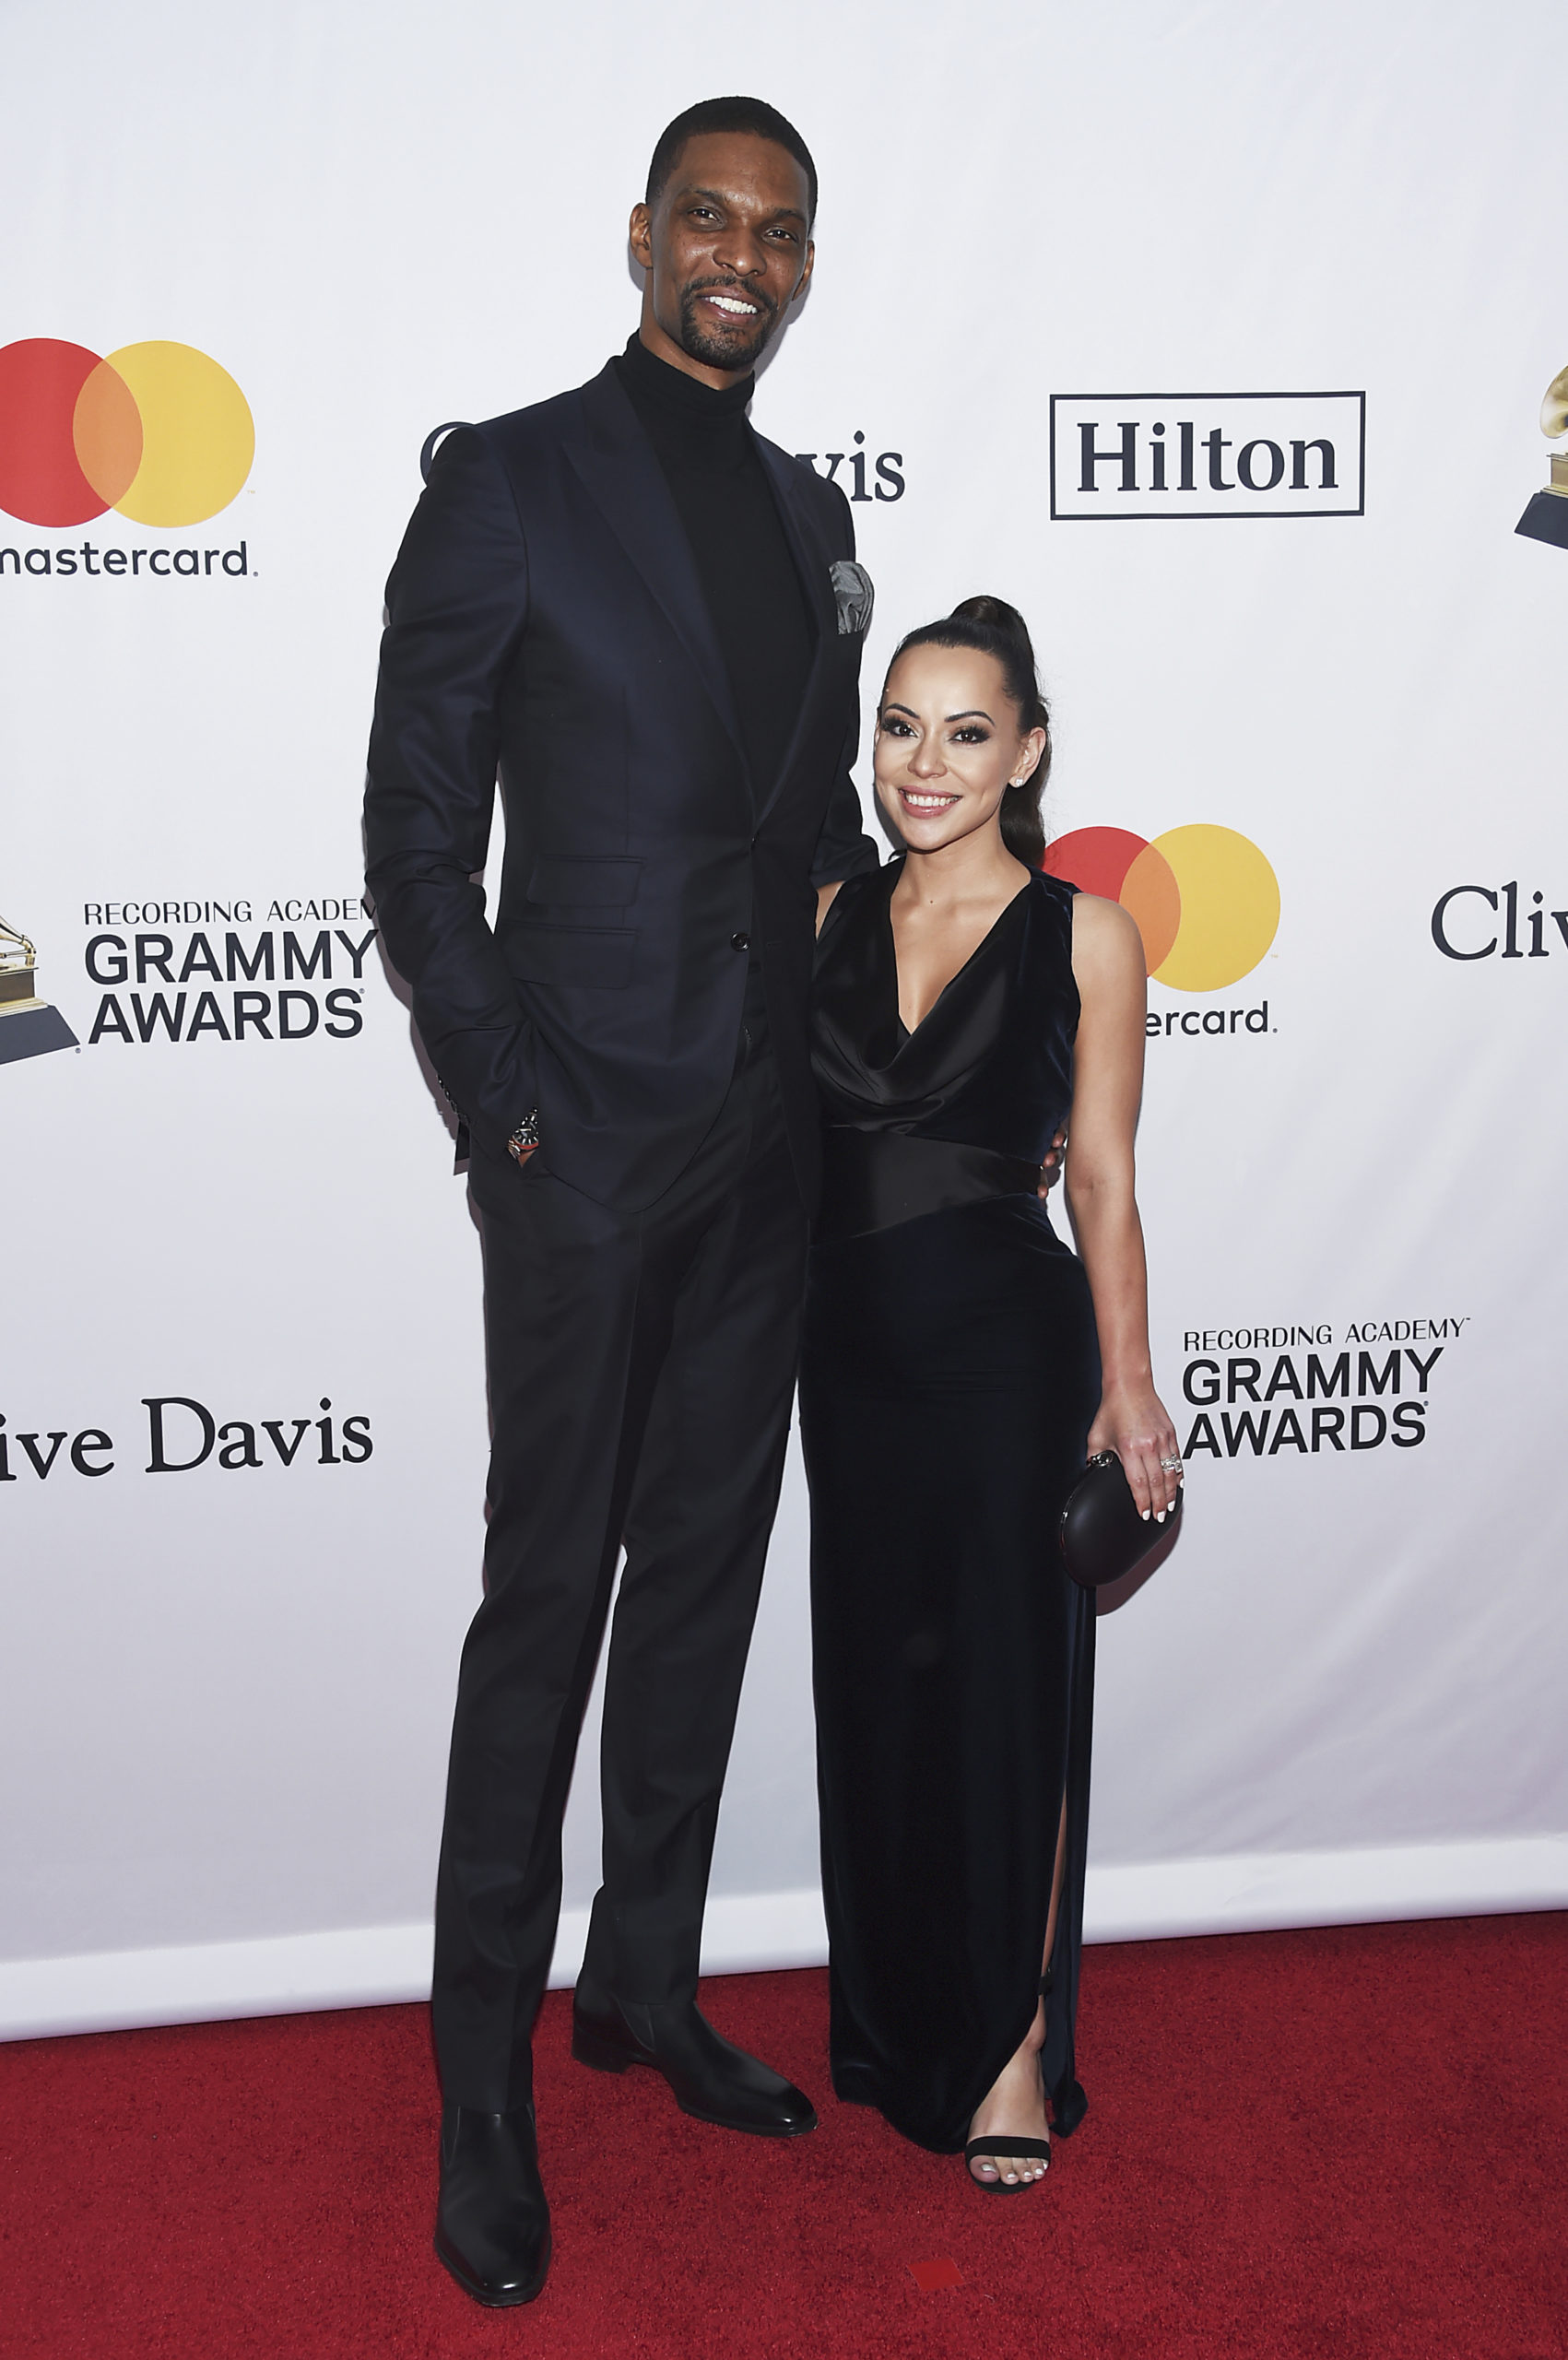 6 Feet 6 celebrity couples with extreme height differences - the delite